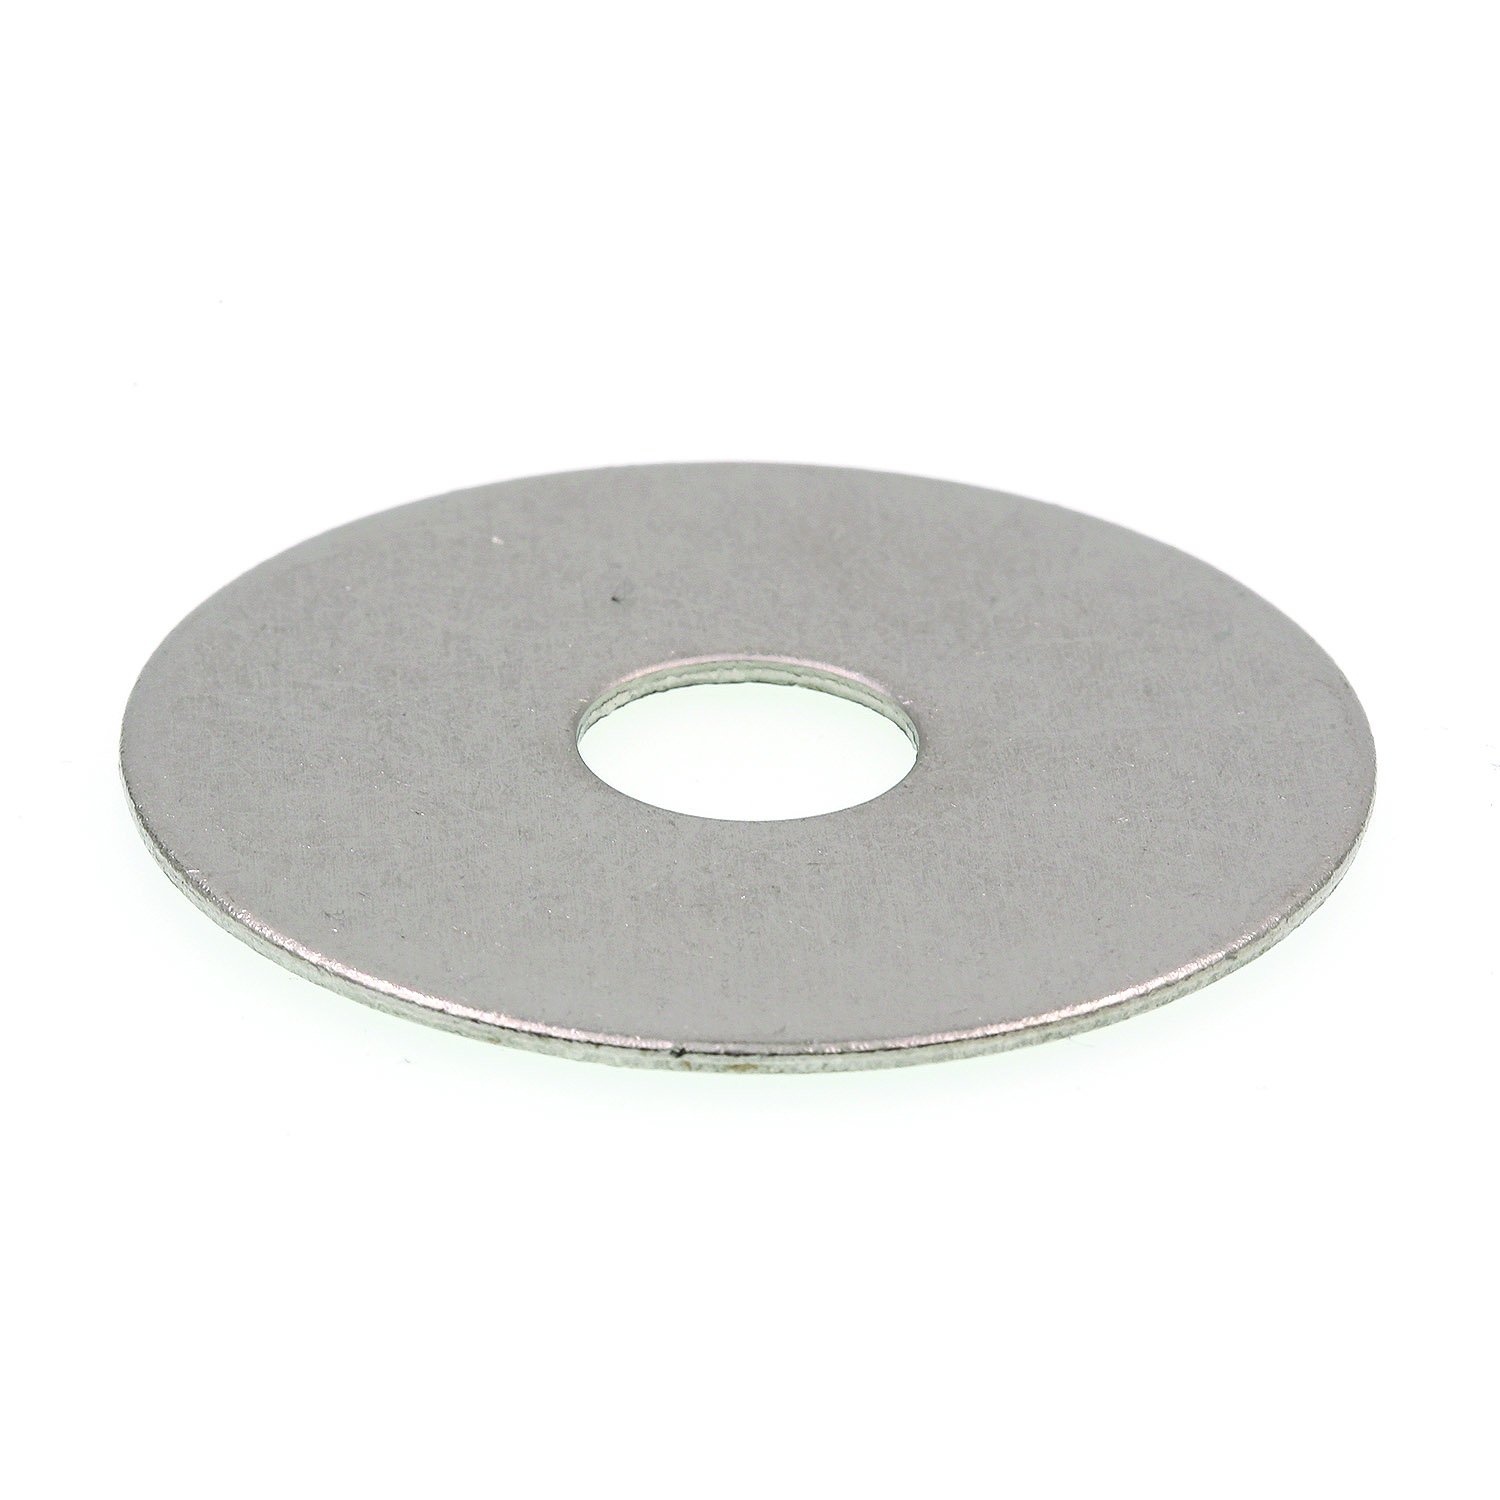 Prime-Line 9081585 Fender Washers Grade 18-8 Stainless Steel OD X 2 in 25-Pack 1//2 in